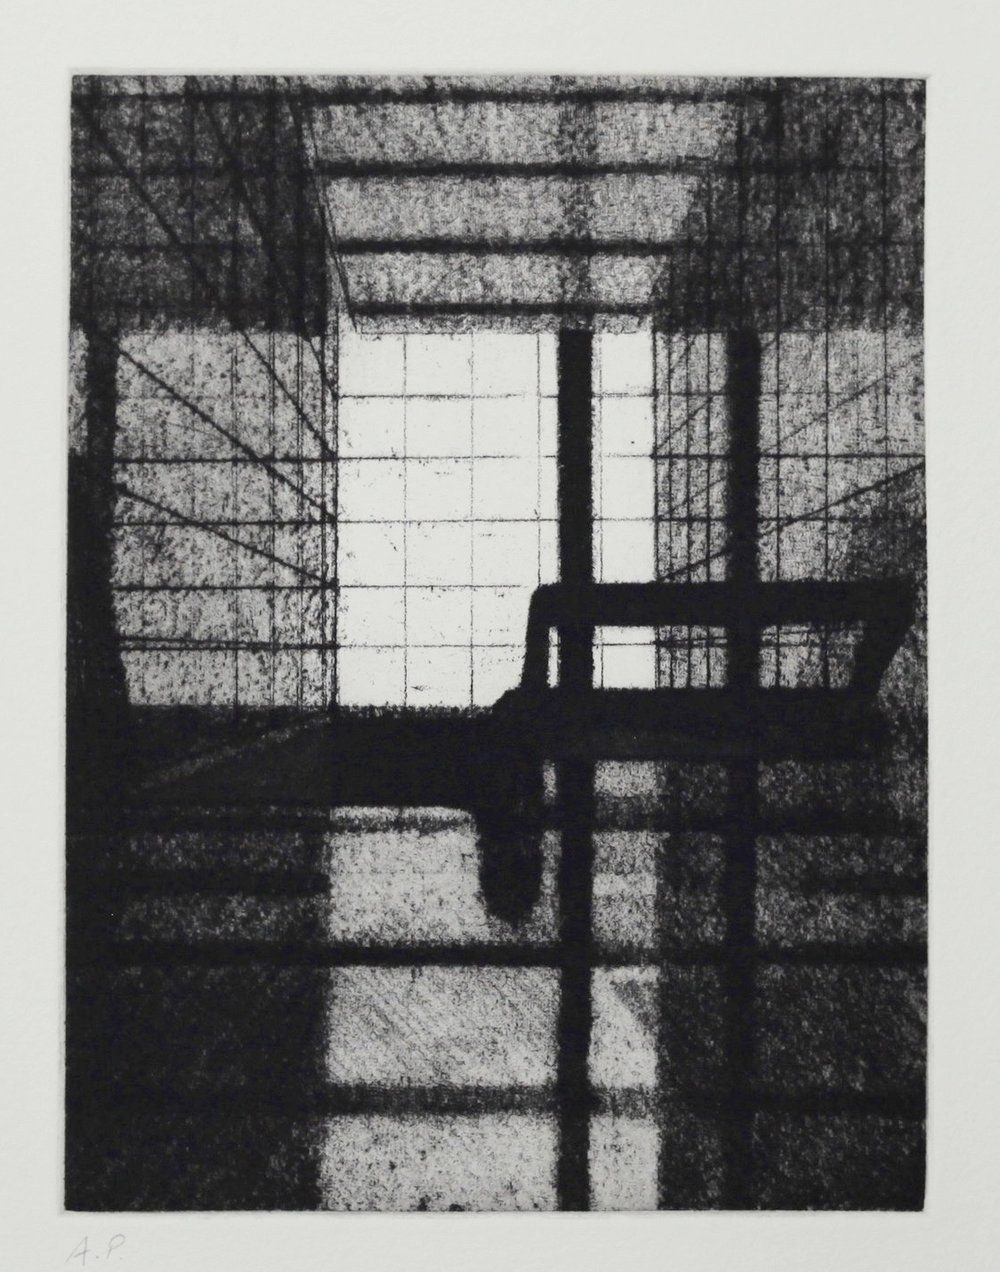 Interior (Foyer I), Soft ground etching, Zinc plate 195x146mm, 2017